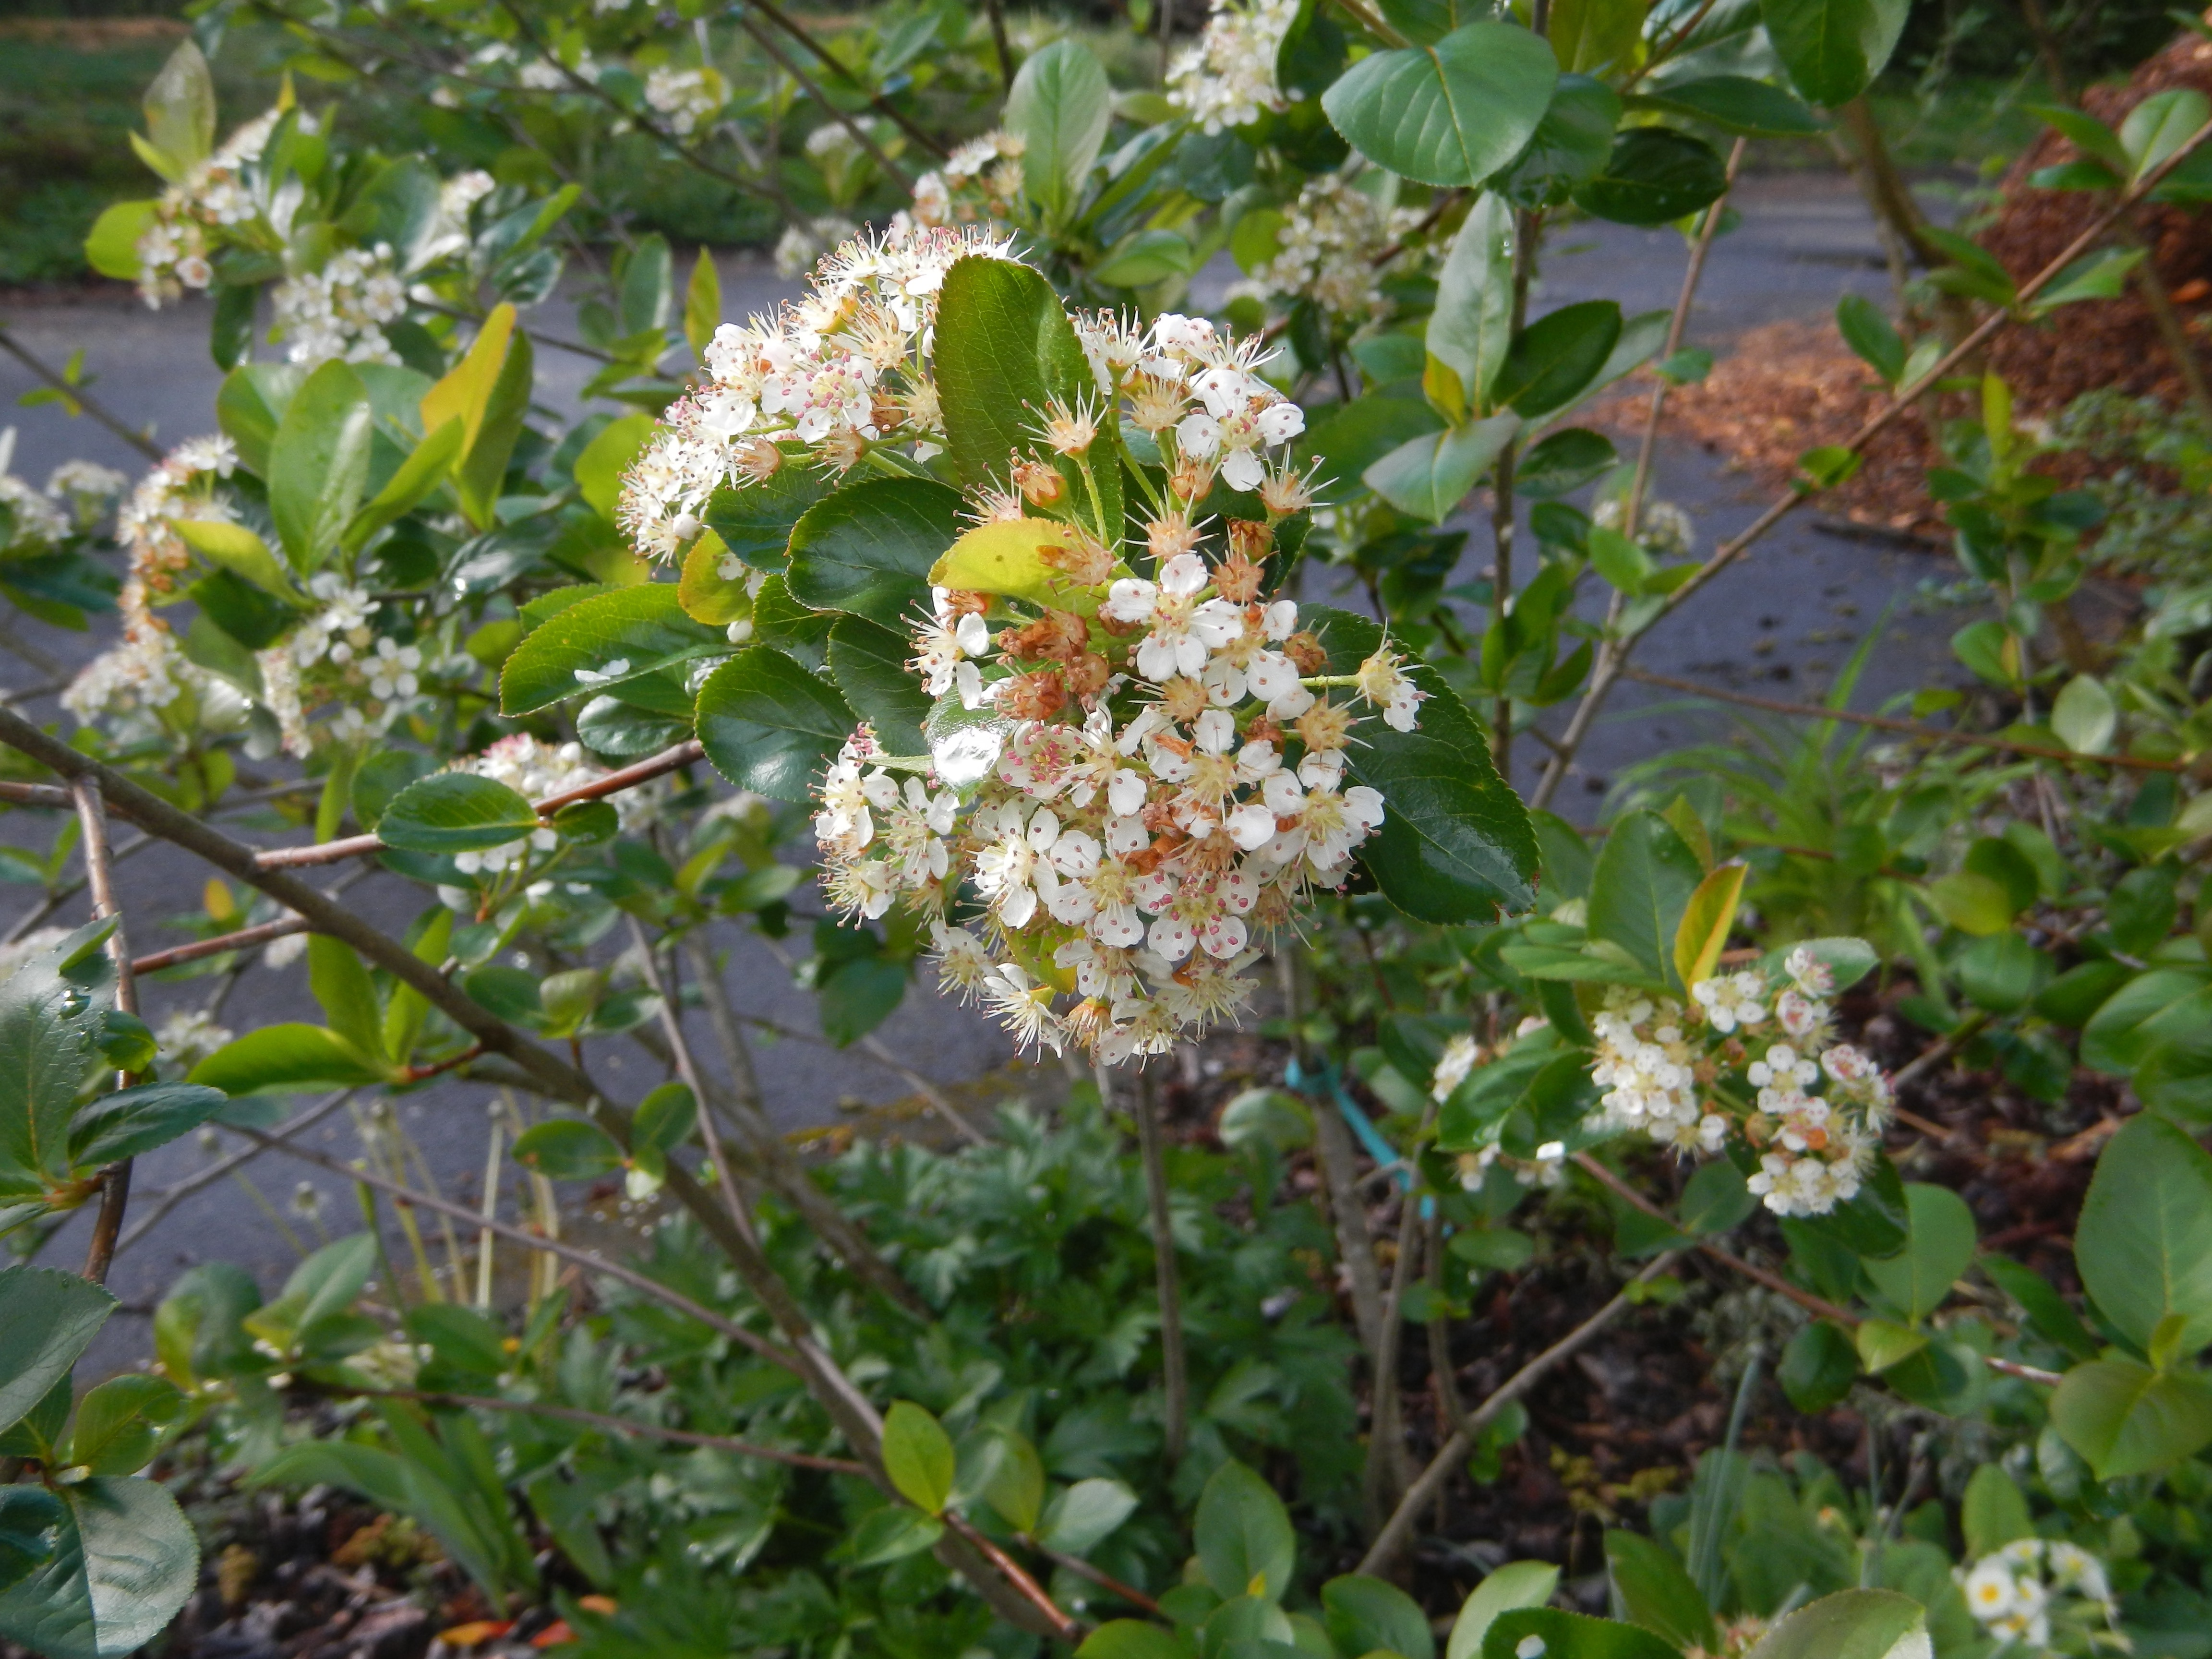 Aronia Berry in flower